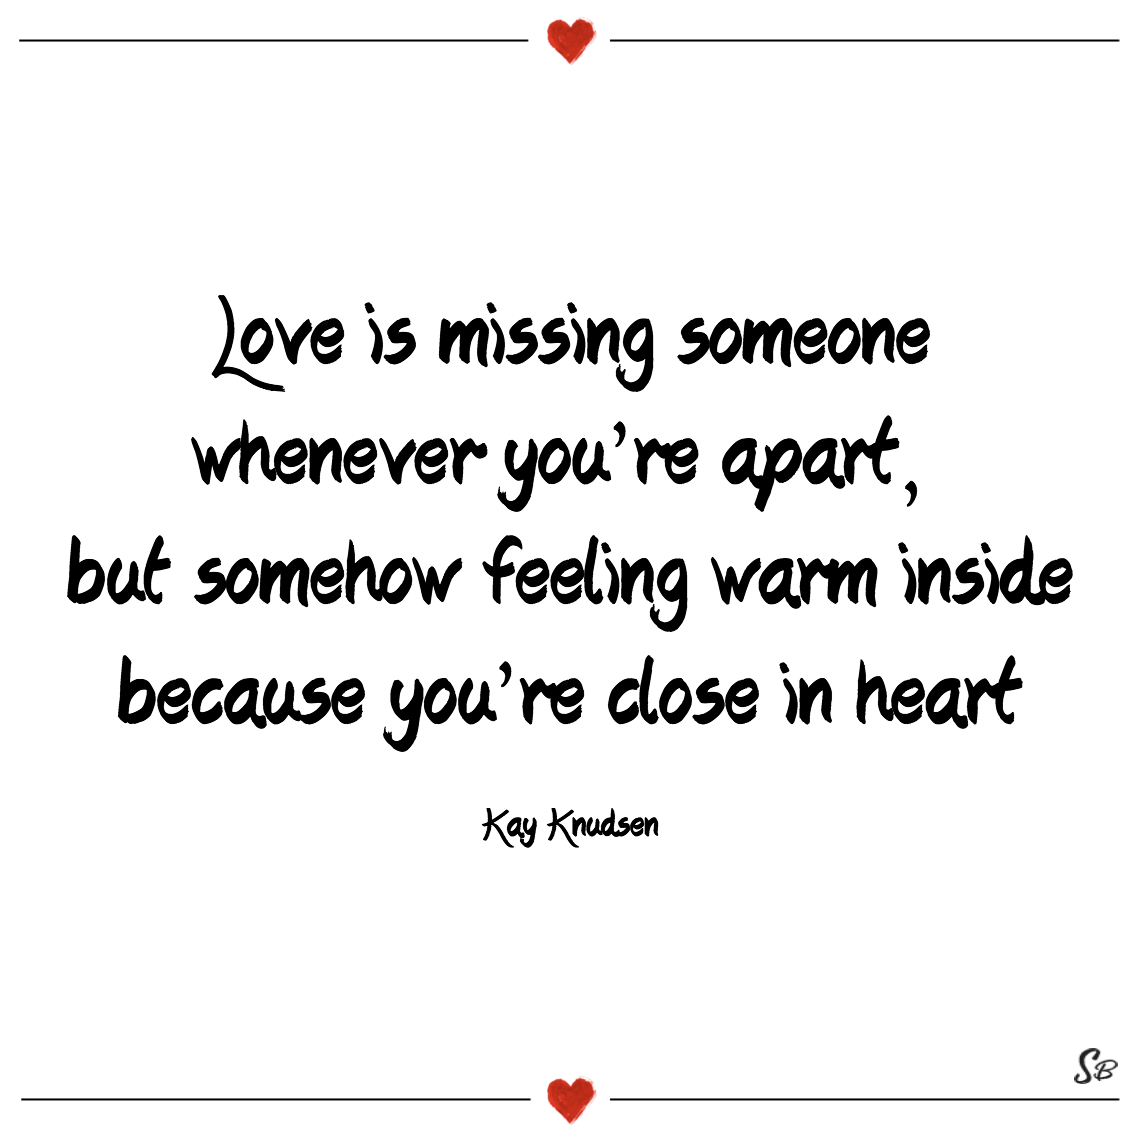 Love is missing someone whenever you're apart, but somehow feeling warm inside because you're close in heart kay knudsen